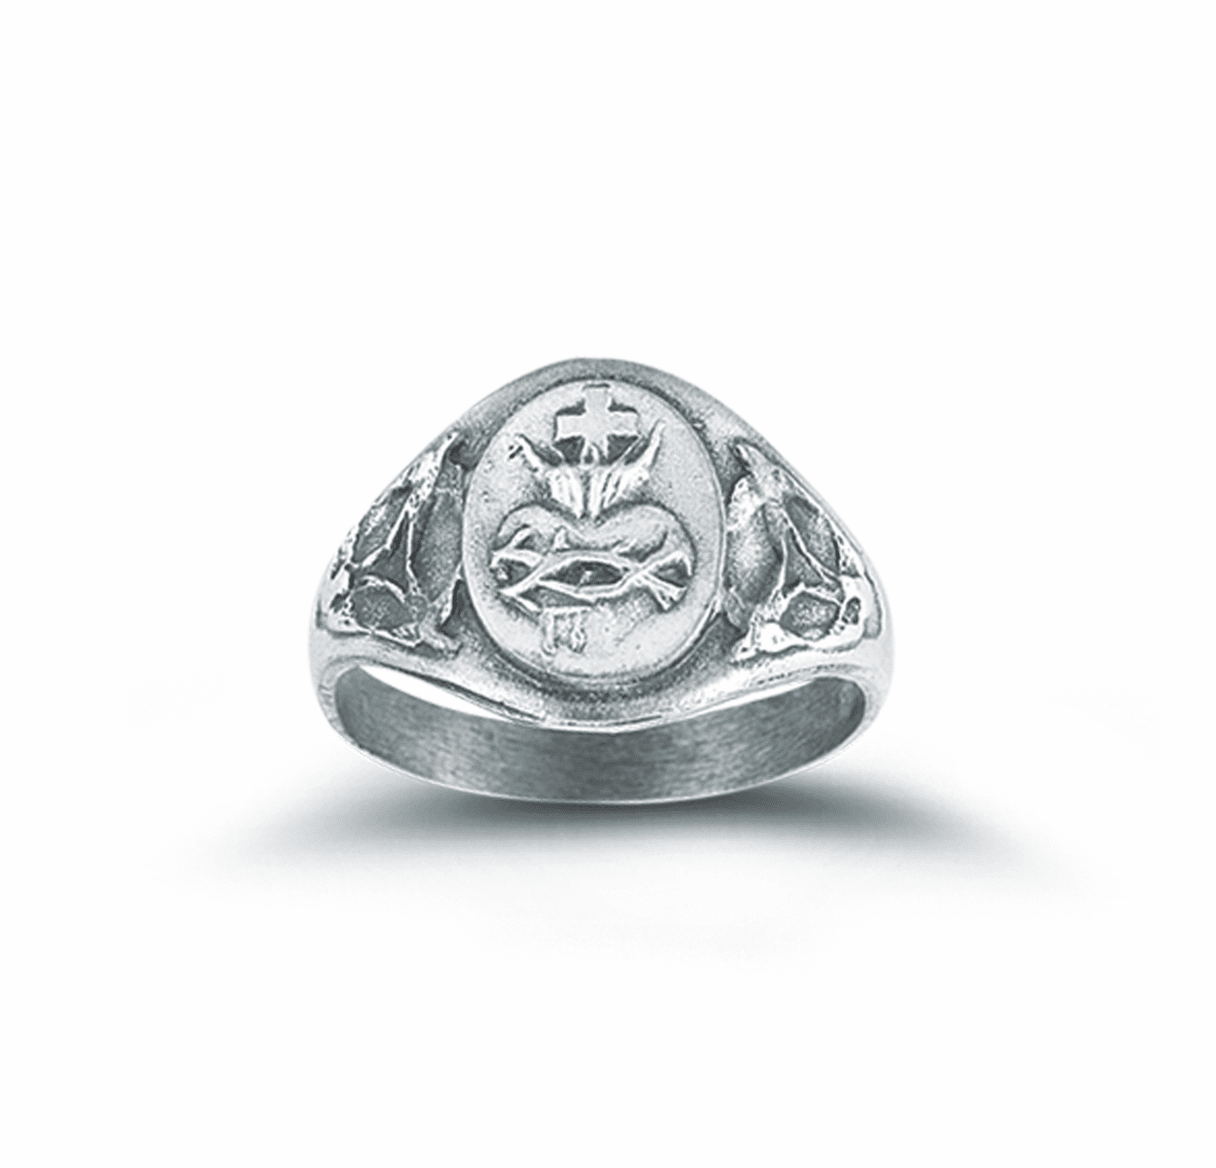 Risen Christ Sacred Heart of Jesus Ring